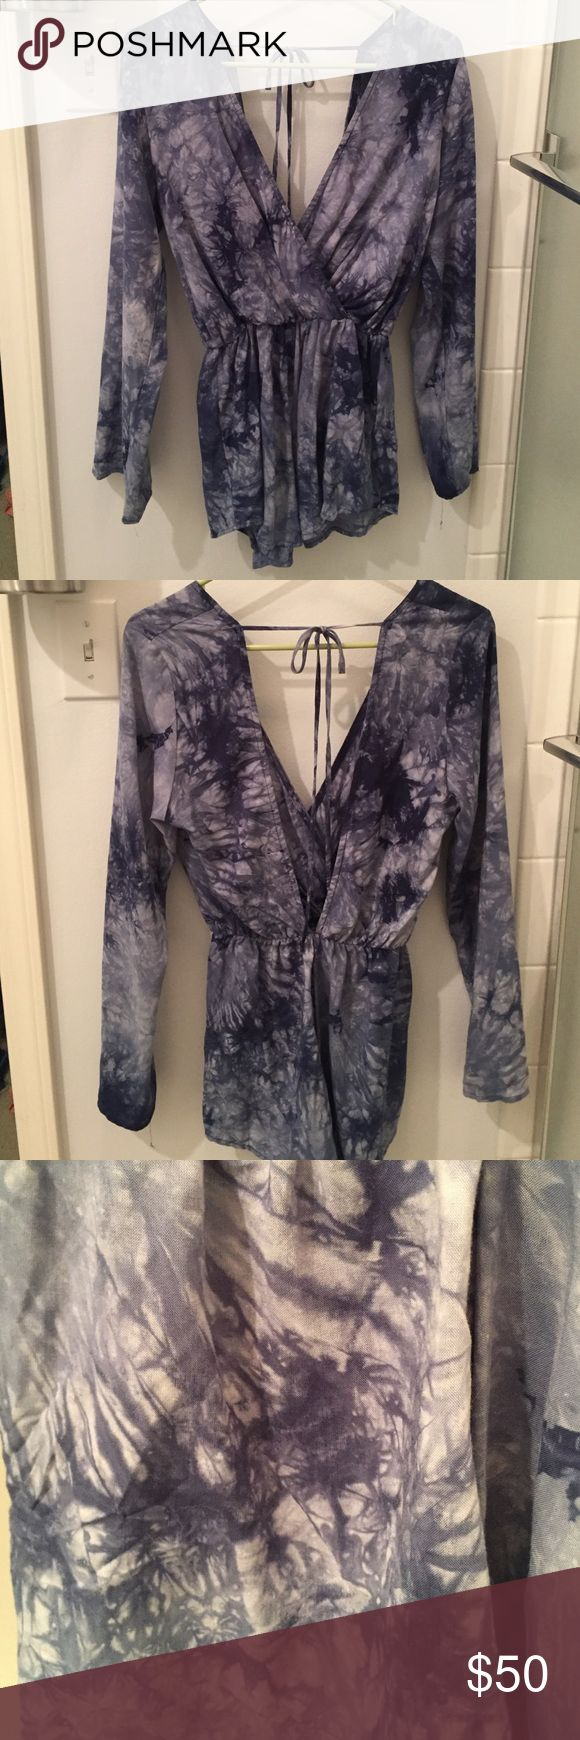 Blue tye dye romper Perfect condition, swoops in the front and ties in the back. Perfect with just about anything!!!! from a local boutique in KC called Etiquette. Urban Outfitters Other